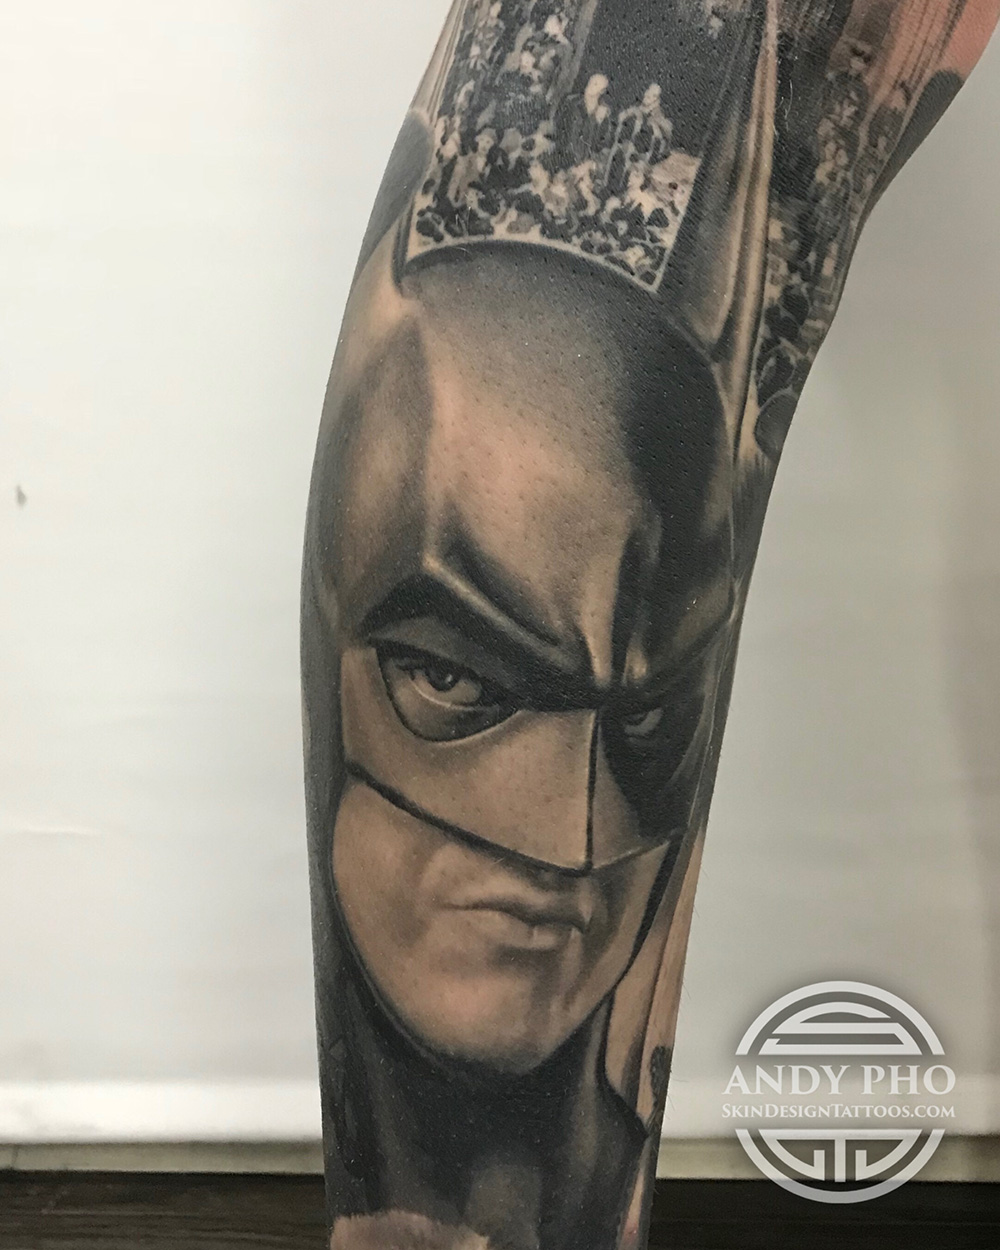 Andy Pho Batman tattoo.JPG